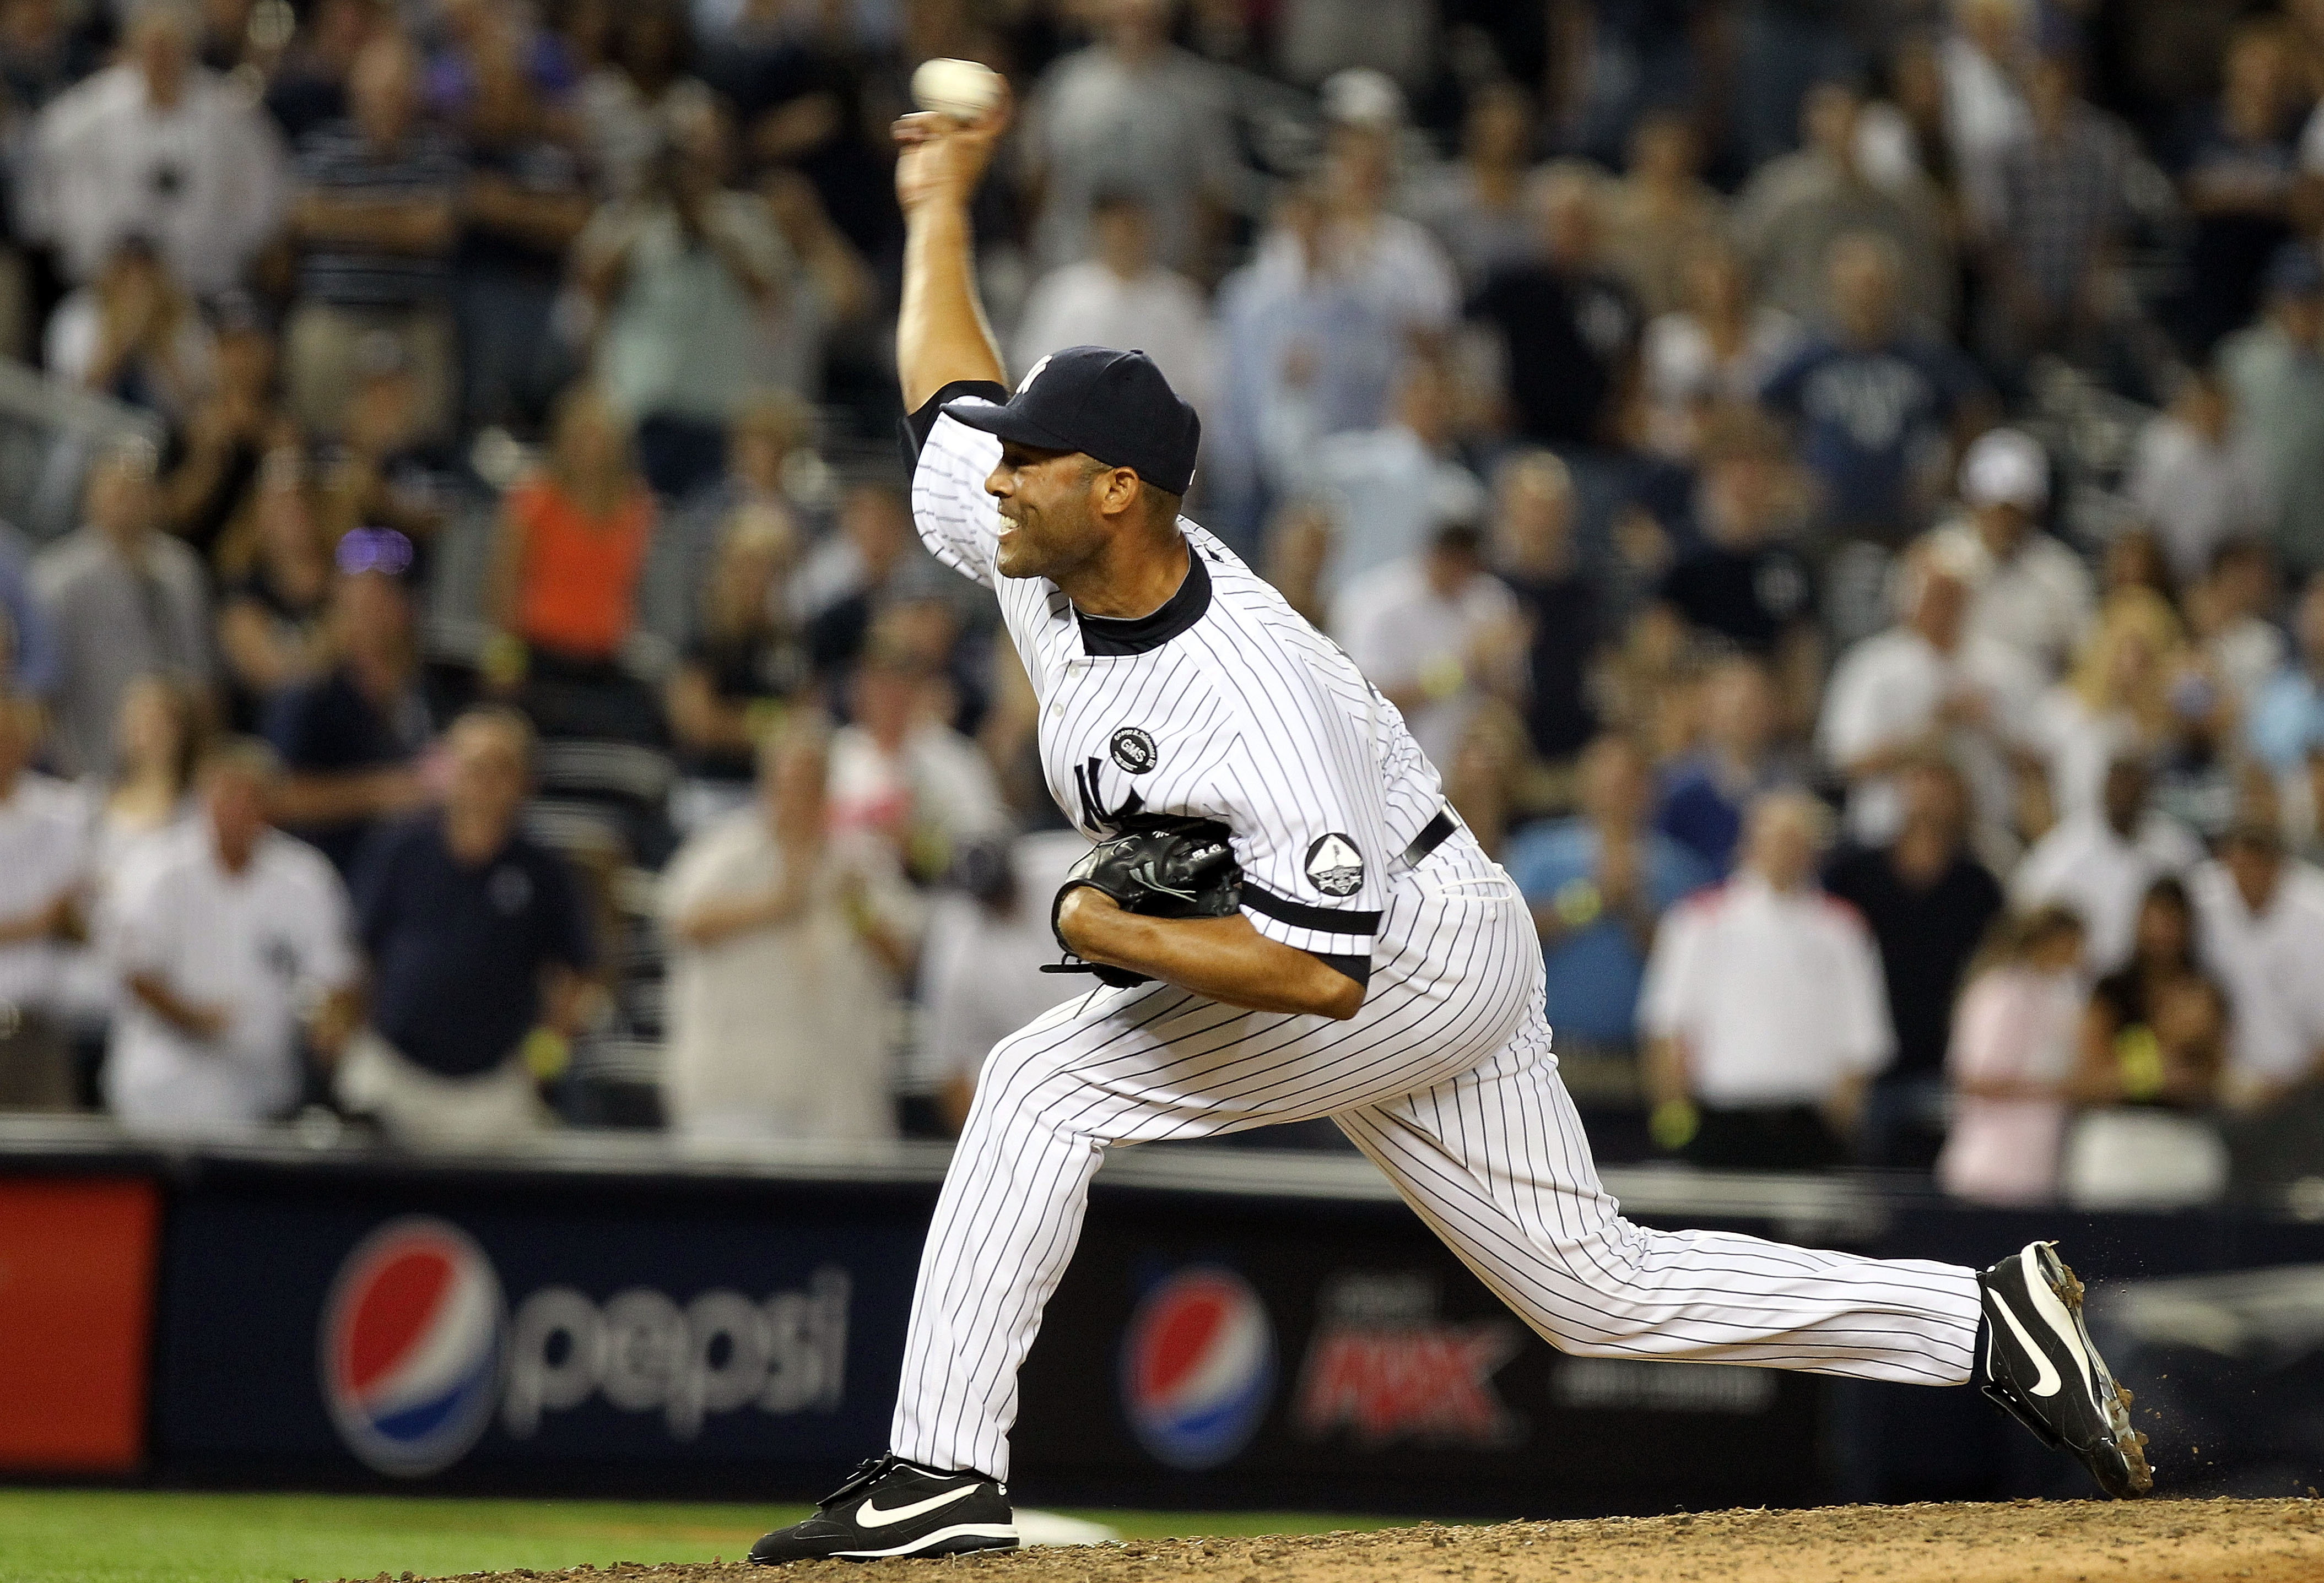 NEW YORK - AUGUST 18:  Mariano Rivera #42 of the New York Yankees pitches against the Detroit Tigers at Yankee Stadium on August 18, 2010 in the Bronx borough of New York City.  (Photo by Nick Laham/Getty Images)